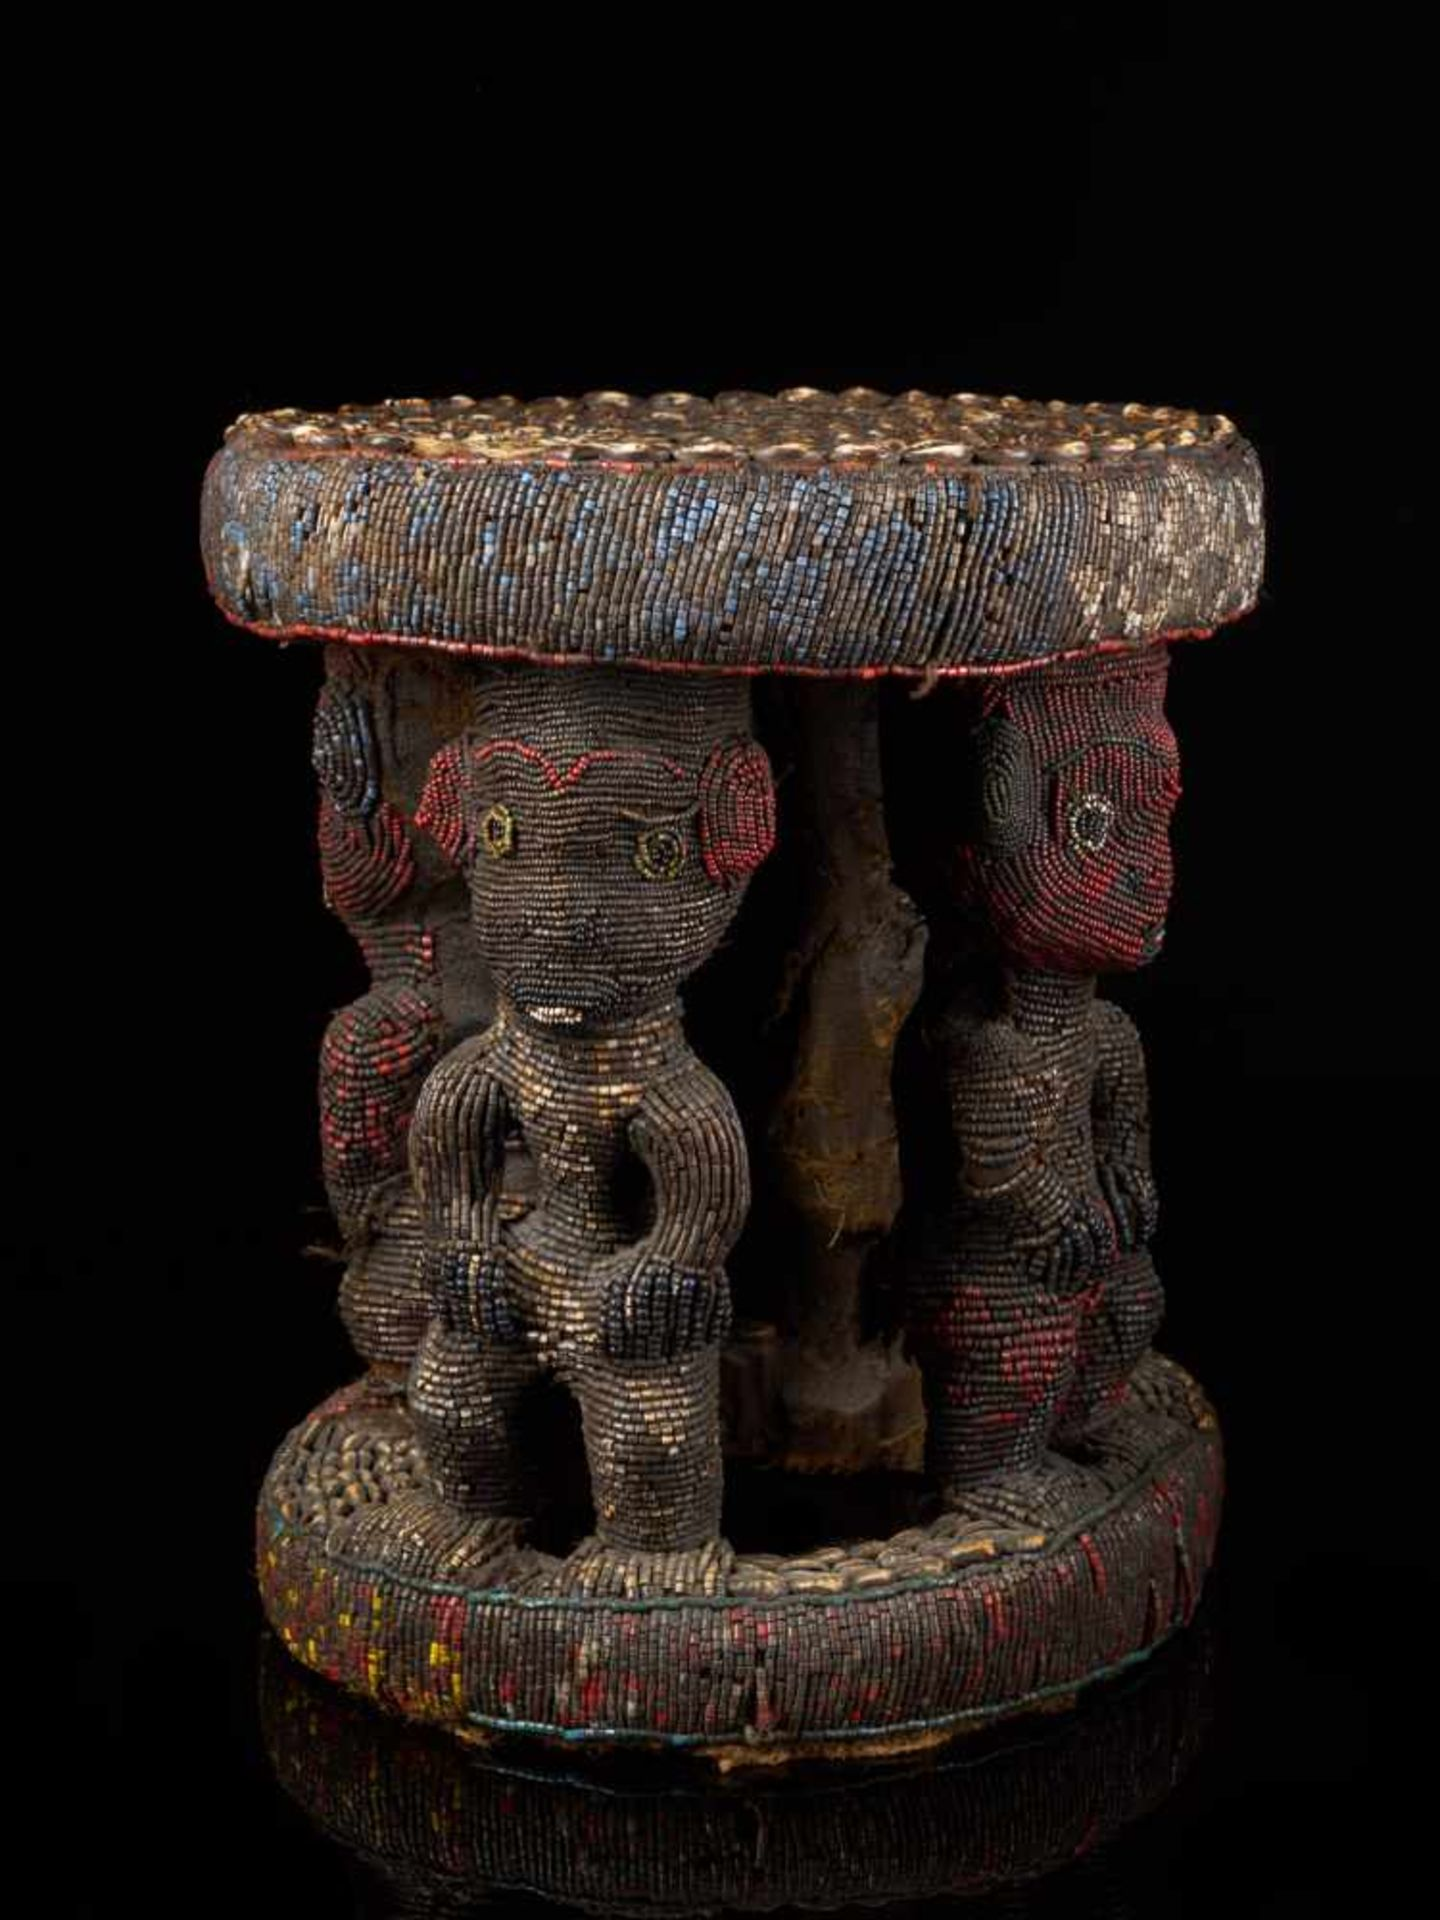 Beaded Royal Stool Supported By Four Figures - Tribal ArtThis stunning stool has a round base and - Bild 6 aus 7